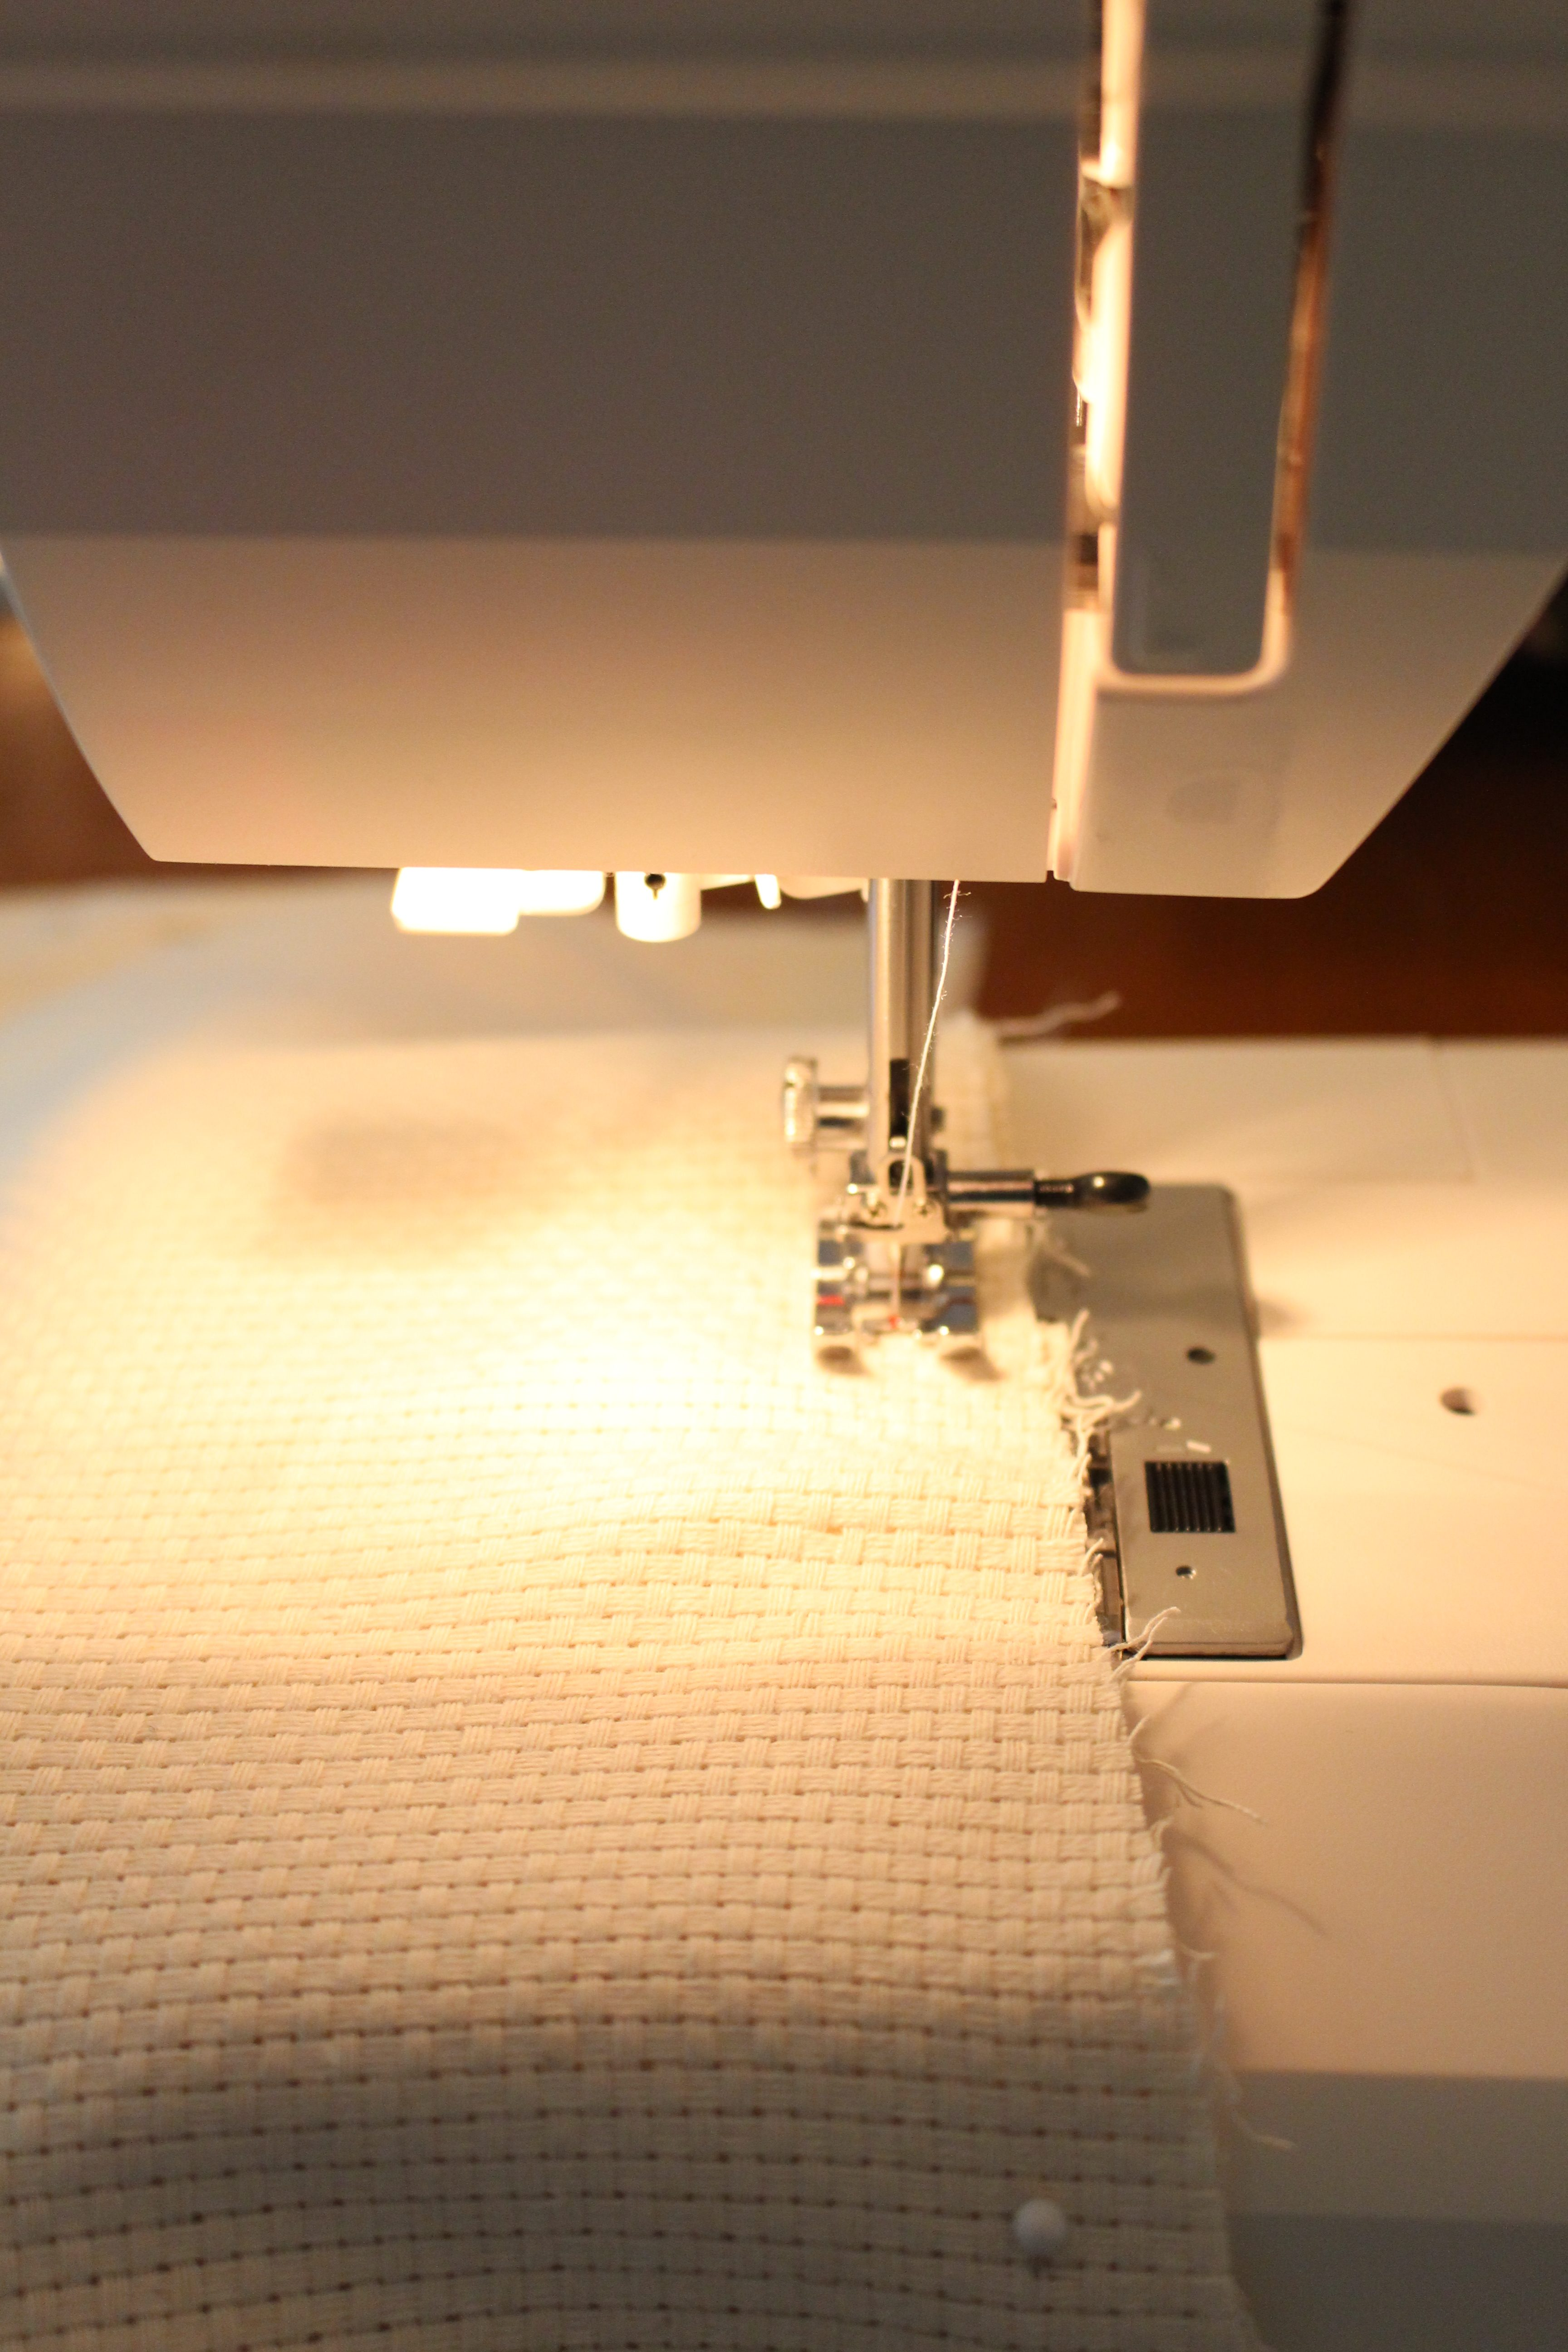 Sewing a pillow cover by www.mylifefromhome.com